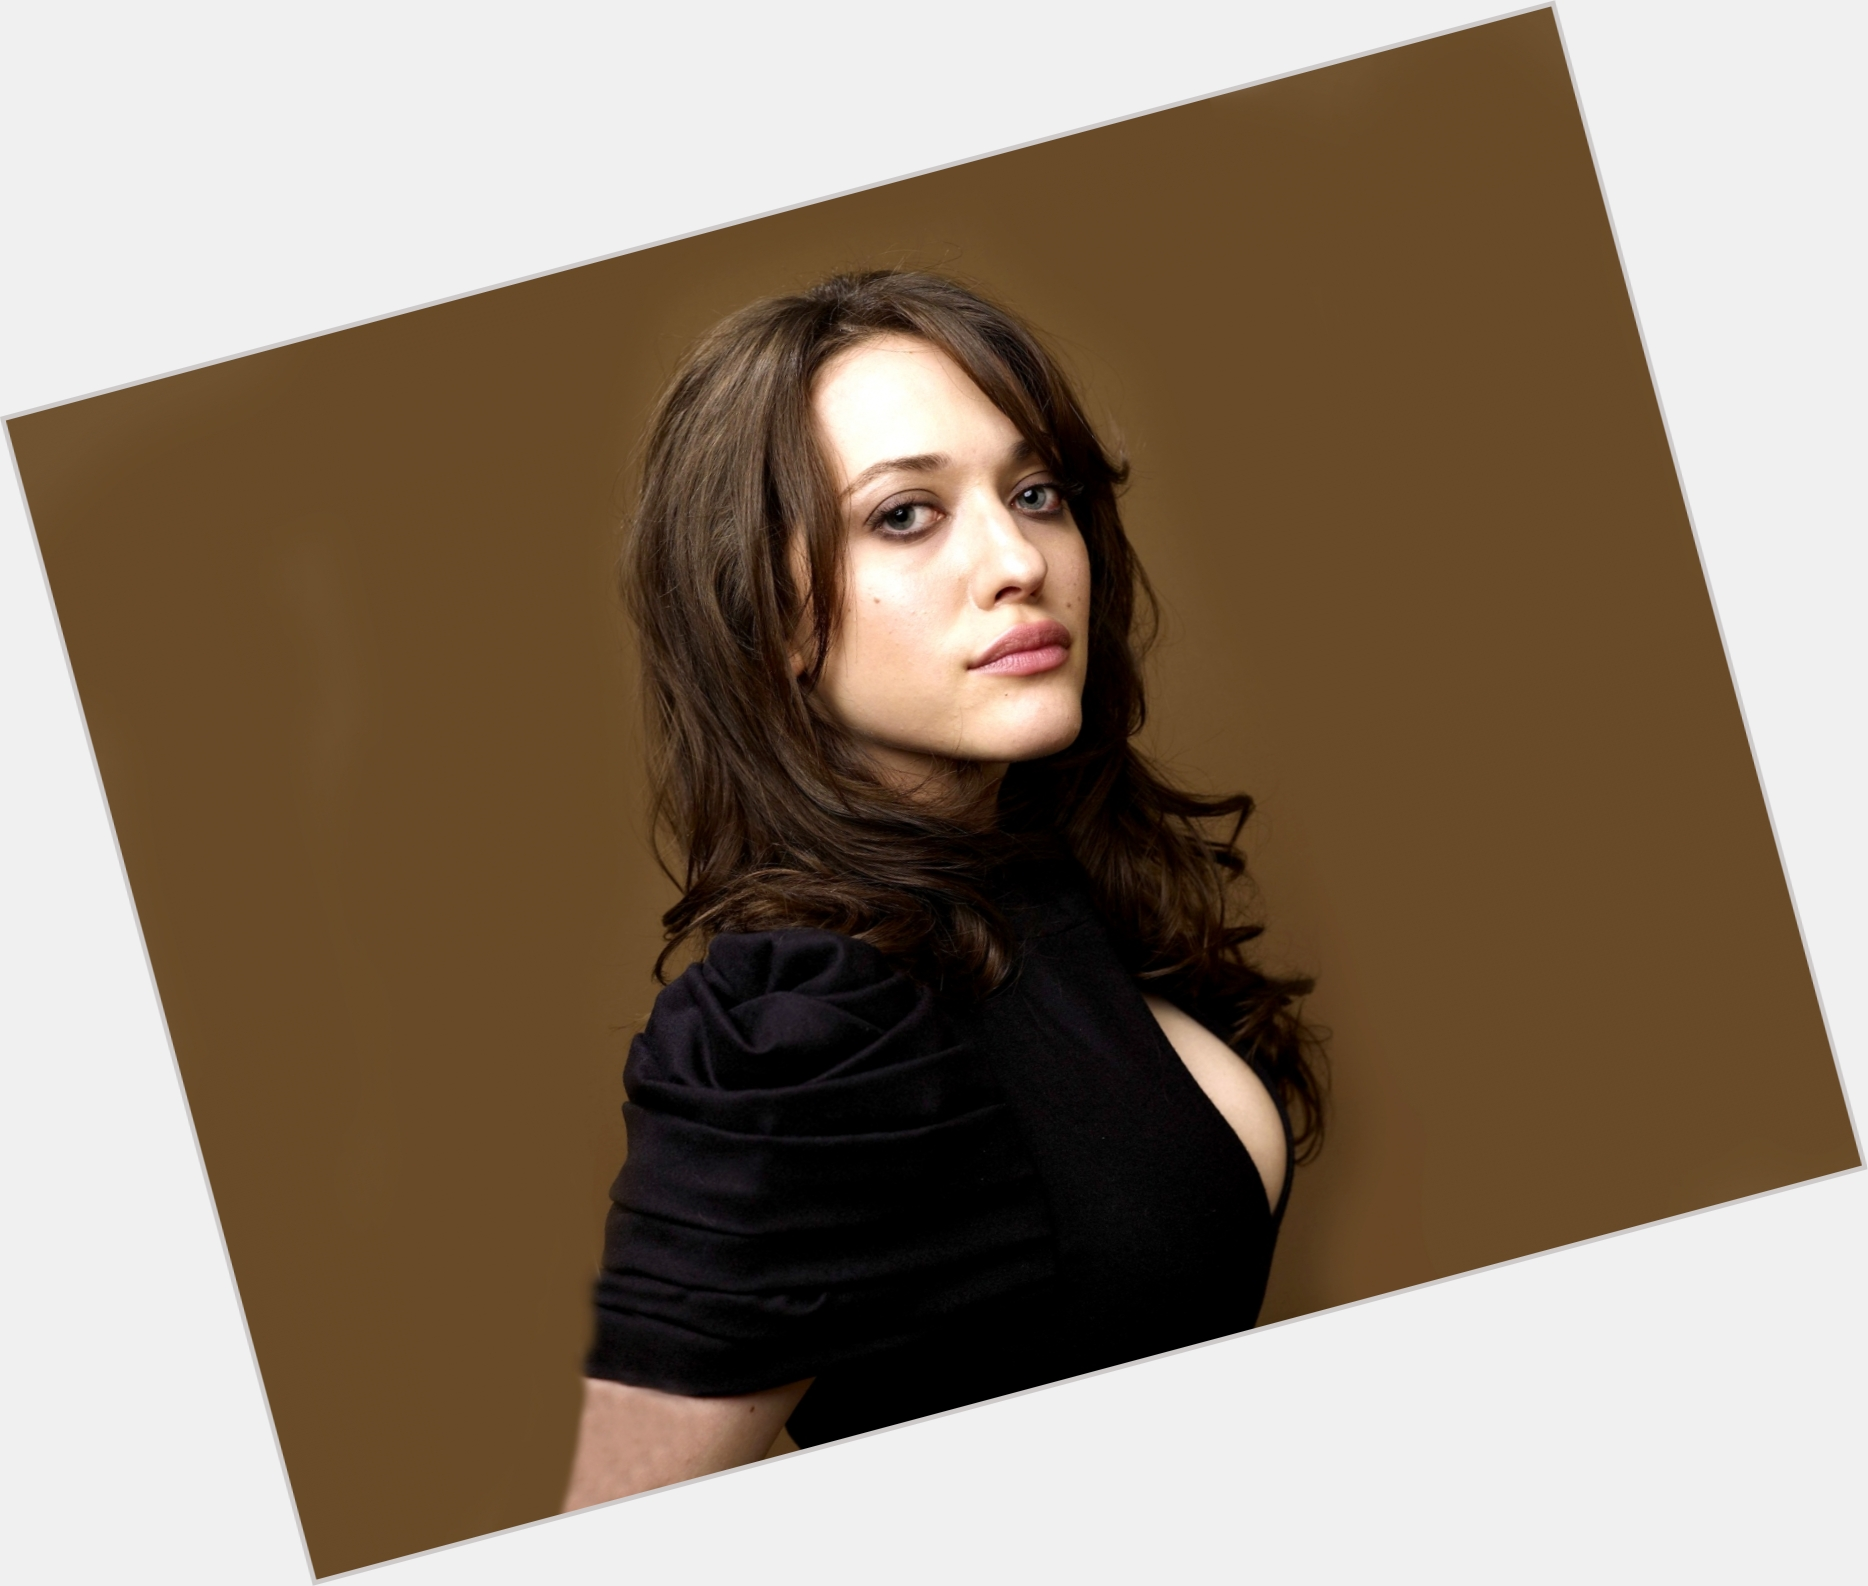 kat dennings weight before and after 2.jpg